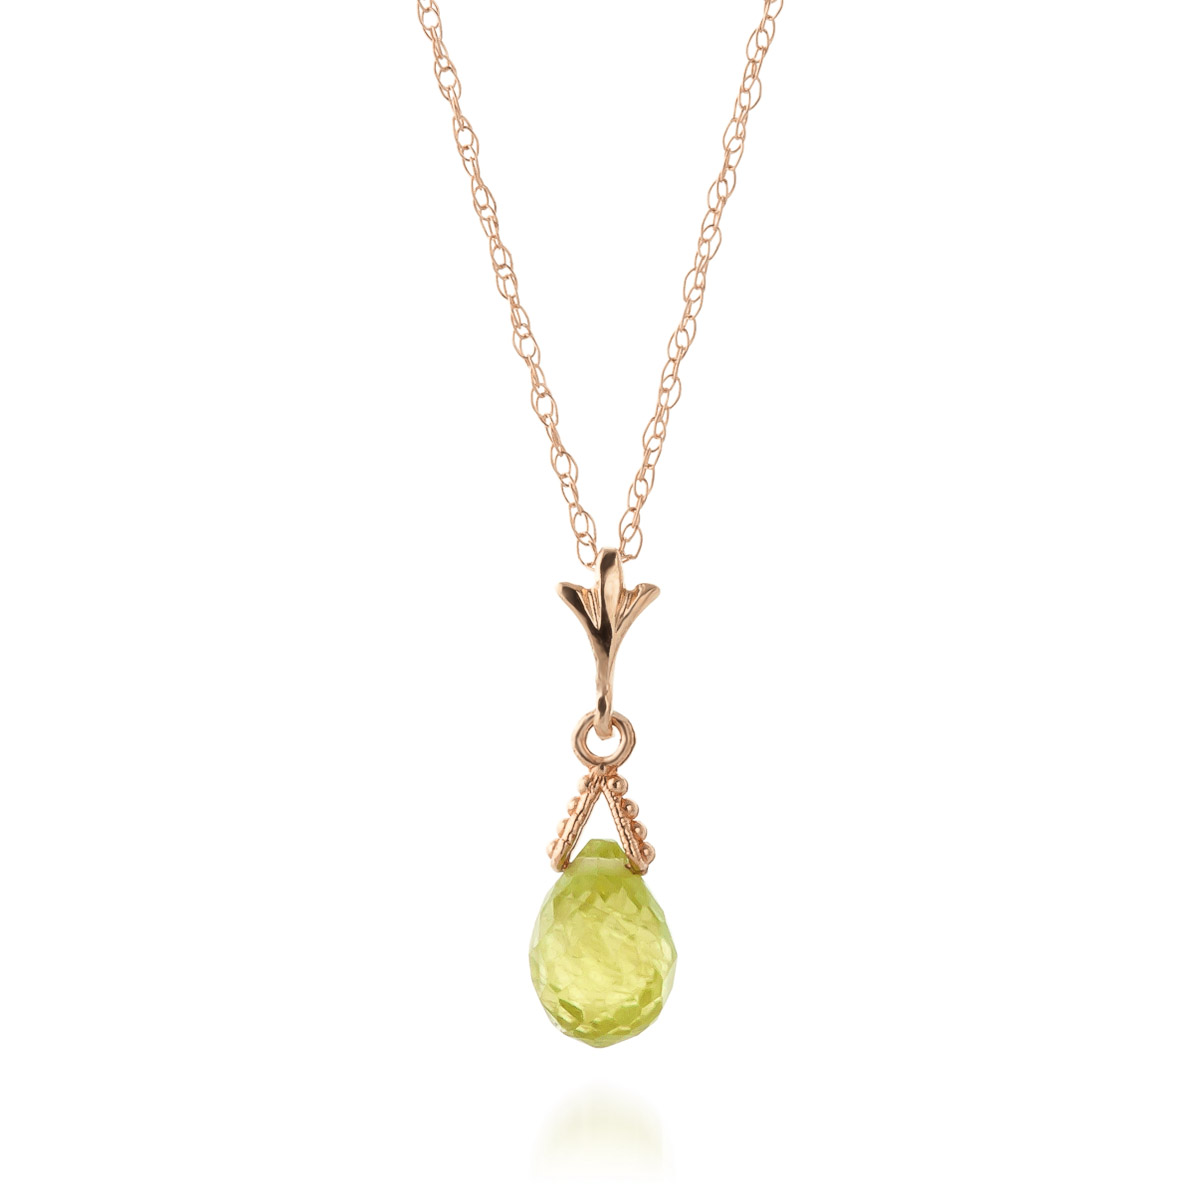 Peridot Droplet Briolette Pendant Necklace 2.5ct in 9ct Rose Gold